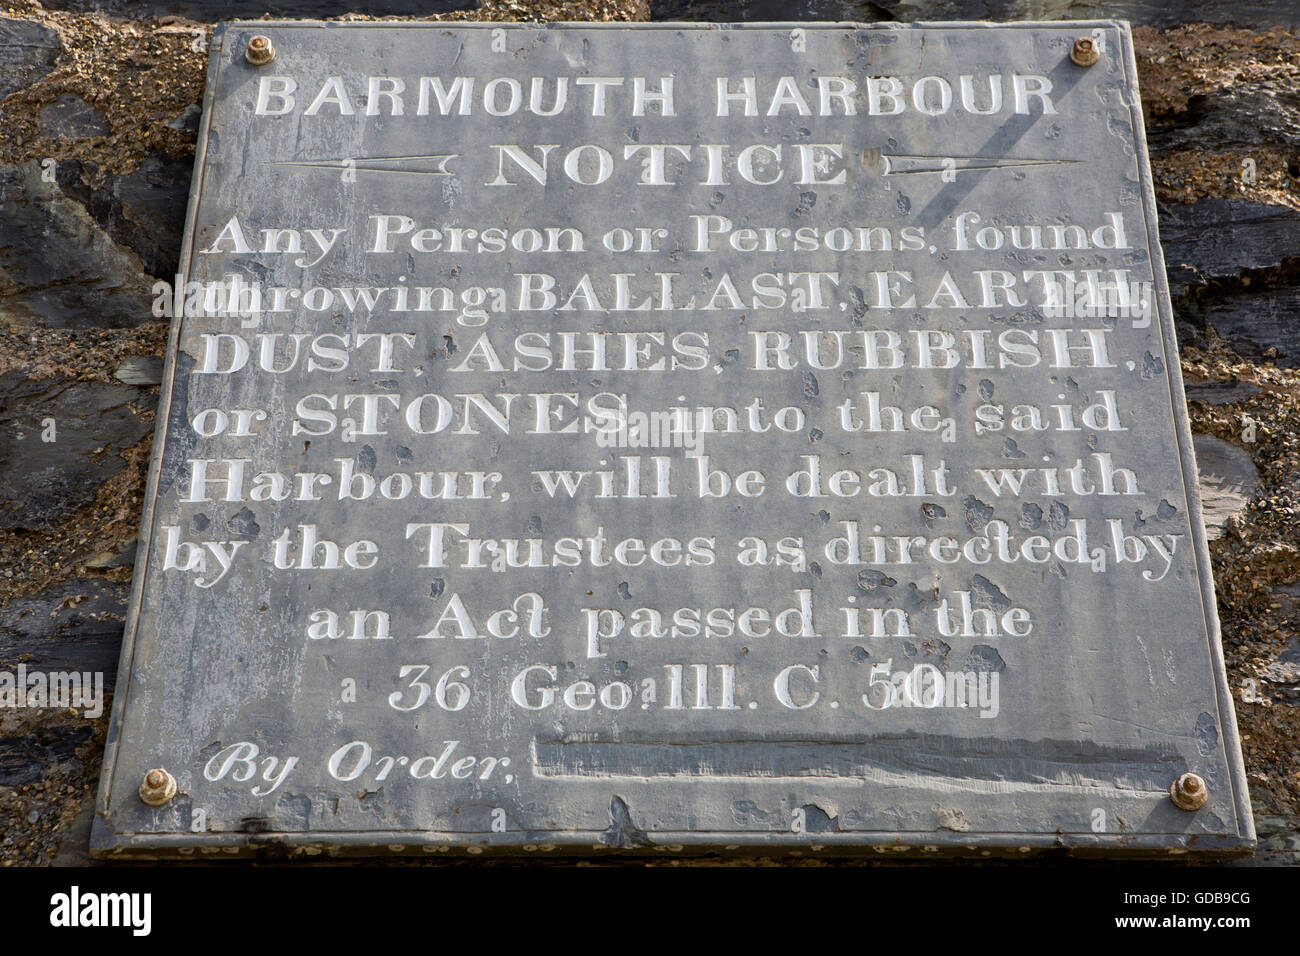 UK, Wales, Gwynedd, Barmouth, Harbourmaster's Office, C18th slate sign prohibiting dumping in water - Stock Image